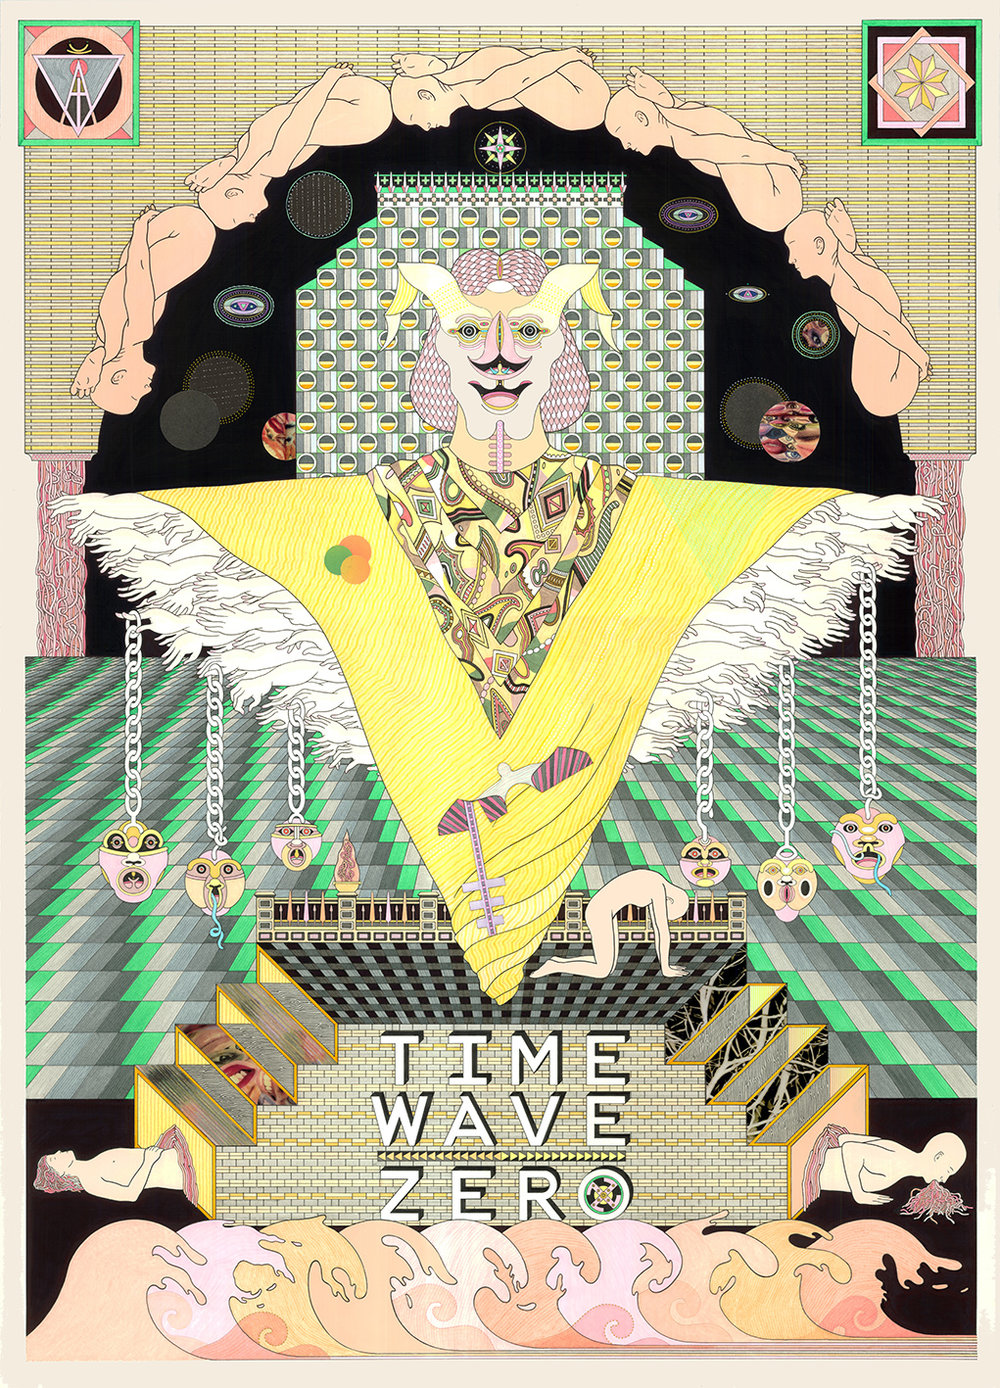 Time Wave Zero, 2014 Pen, fibre tipped markers, metallic paint and gouache on paper 101 x 73.5 cm